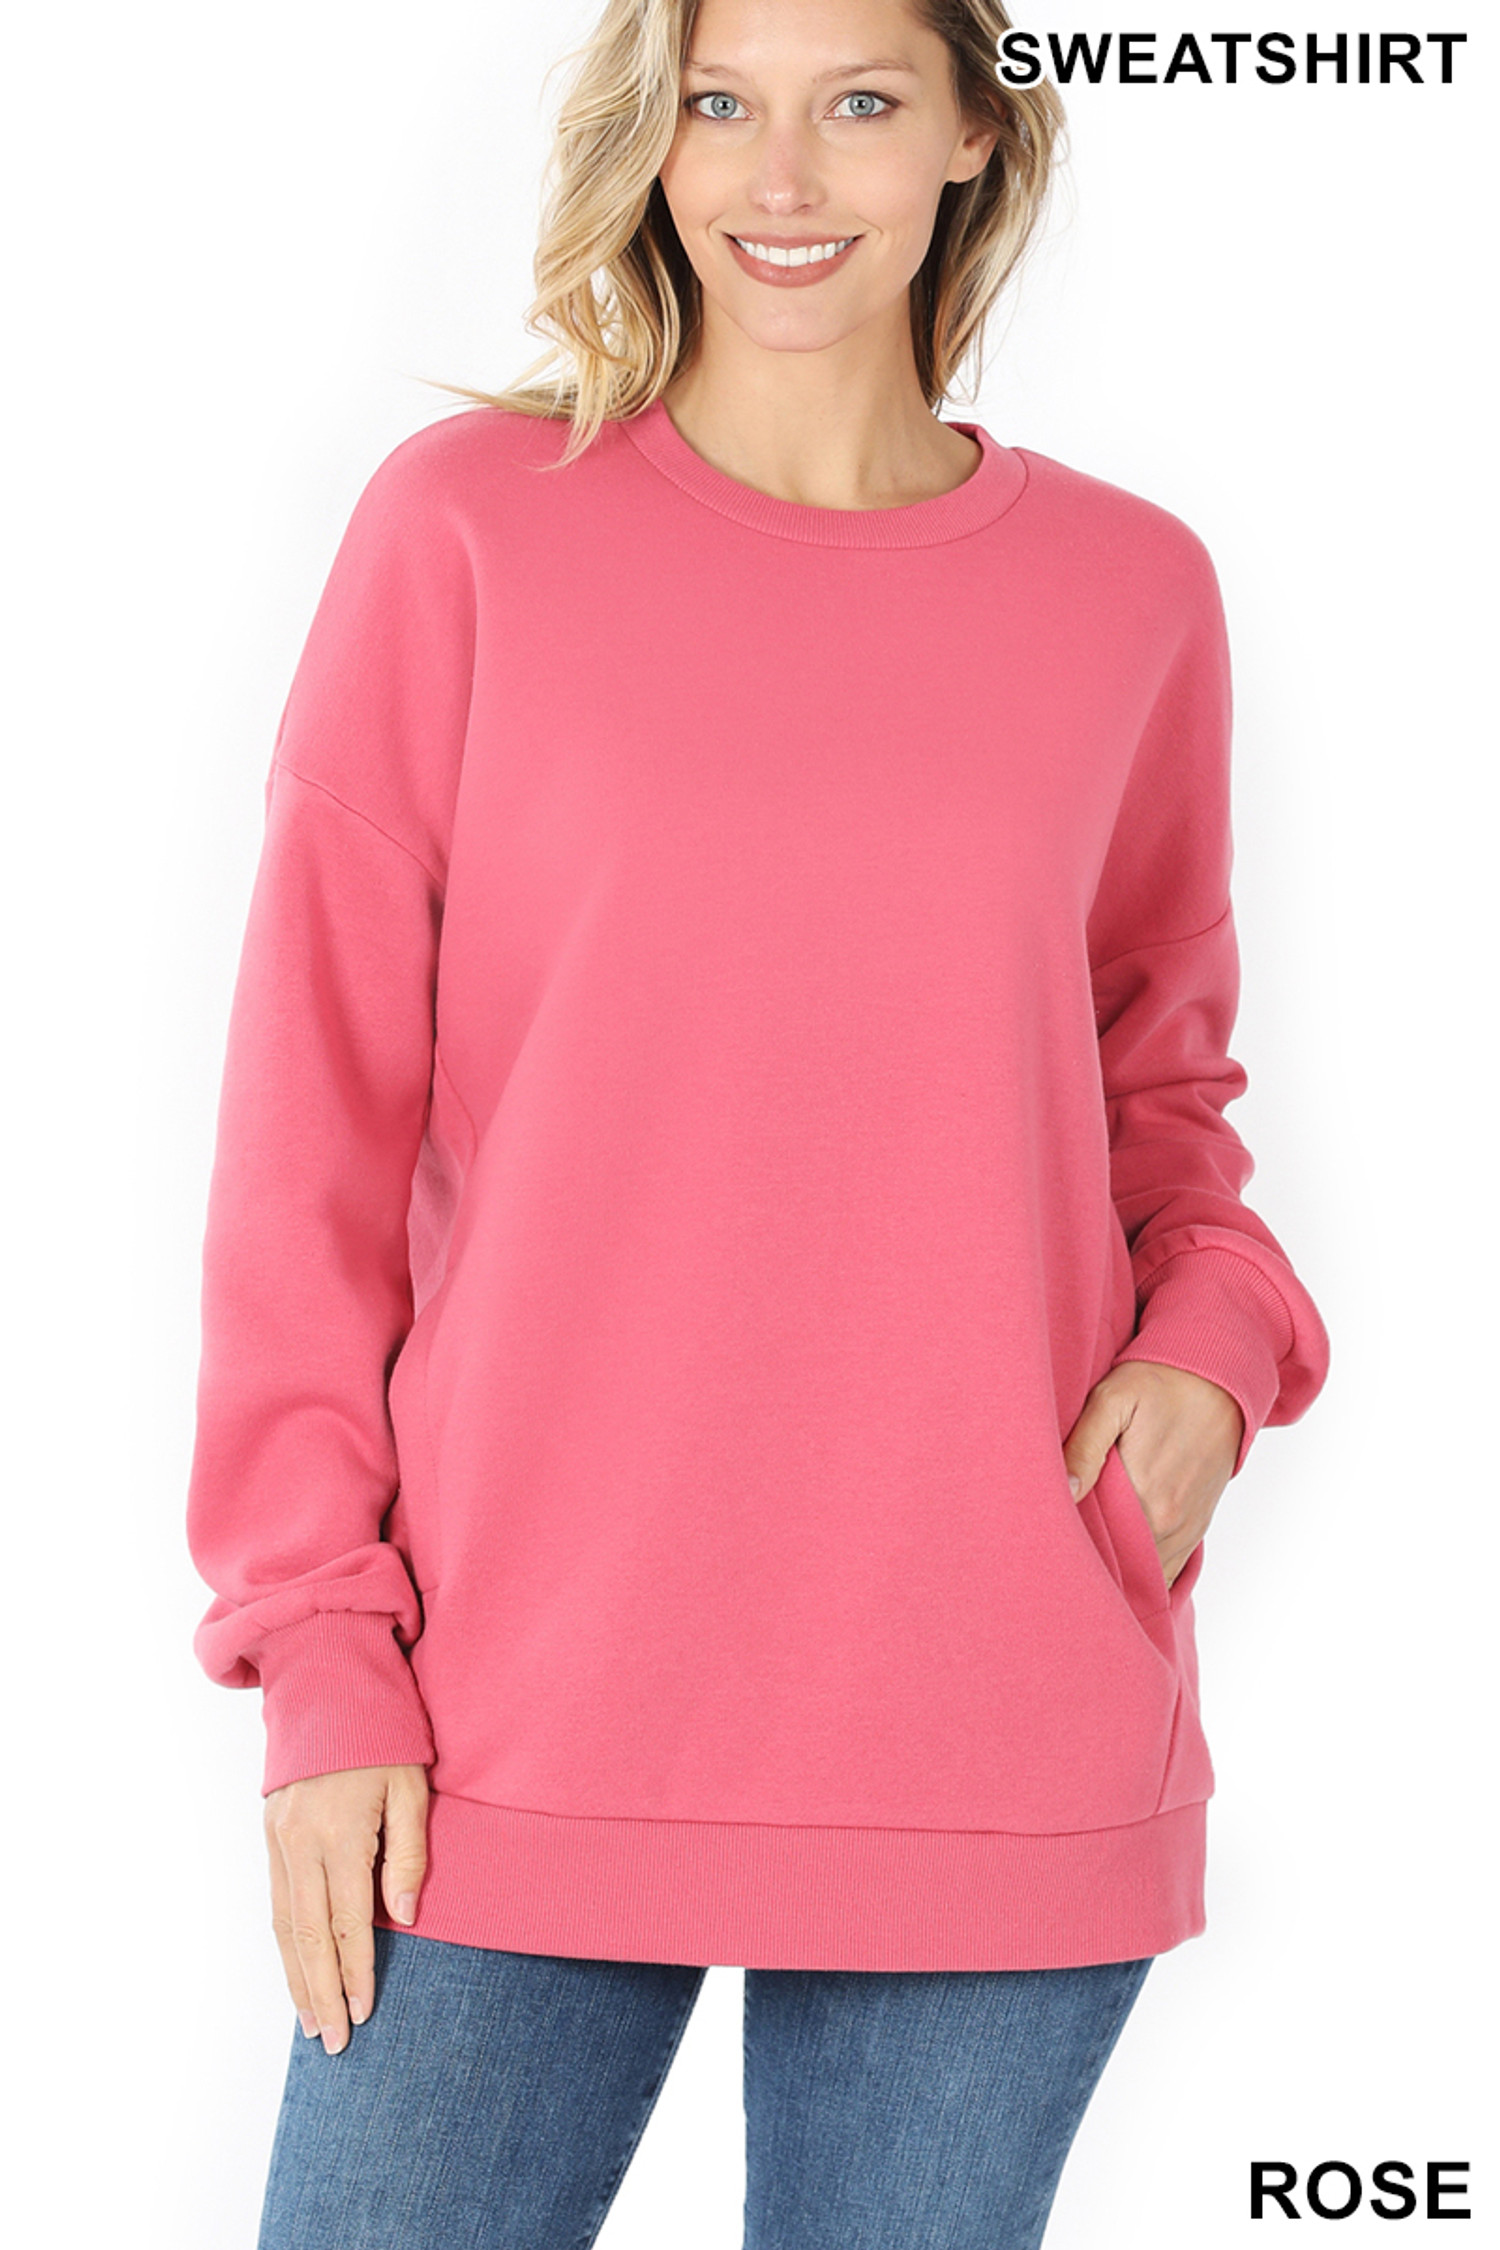 Front image of Rose Round Crew Neck Sweatshirt with Side Pockets